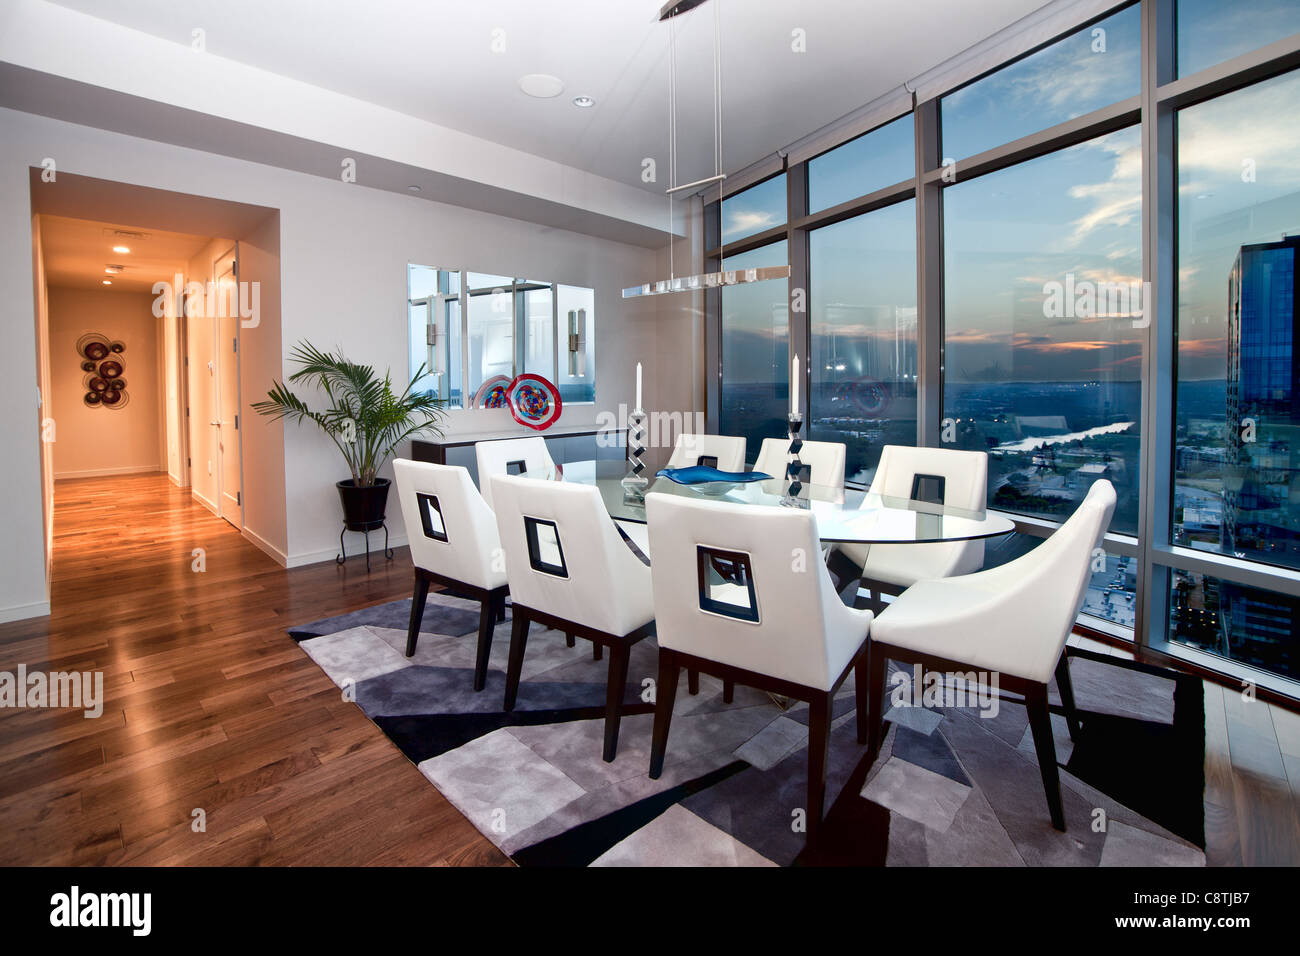 Dining Room In A Steel And Glass Luxury Condo Highrise In Austin, Texas  During Sunset